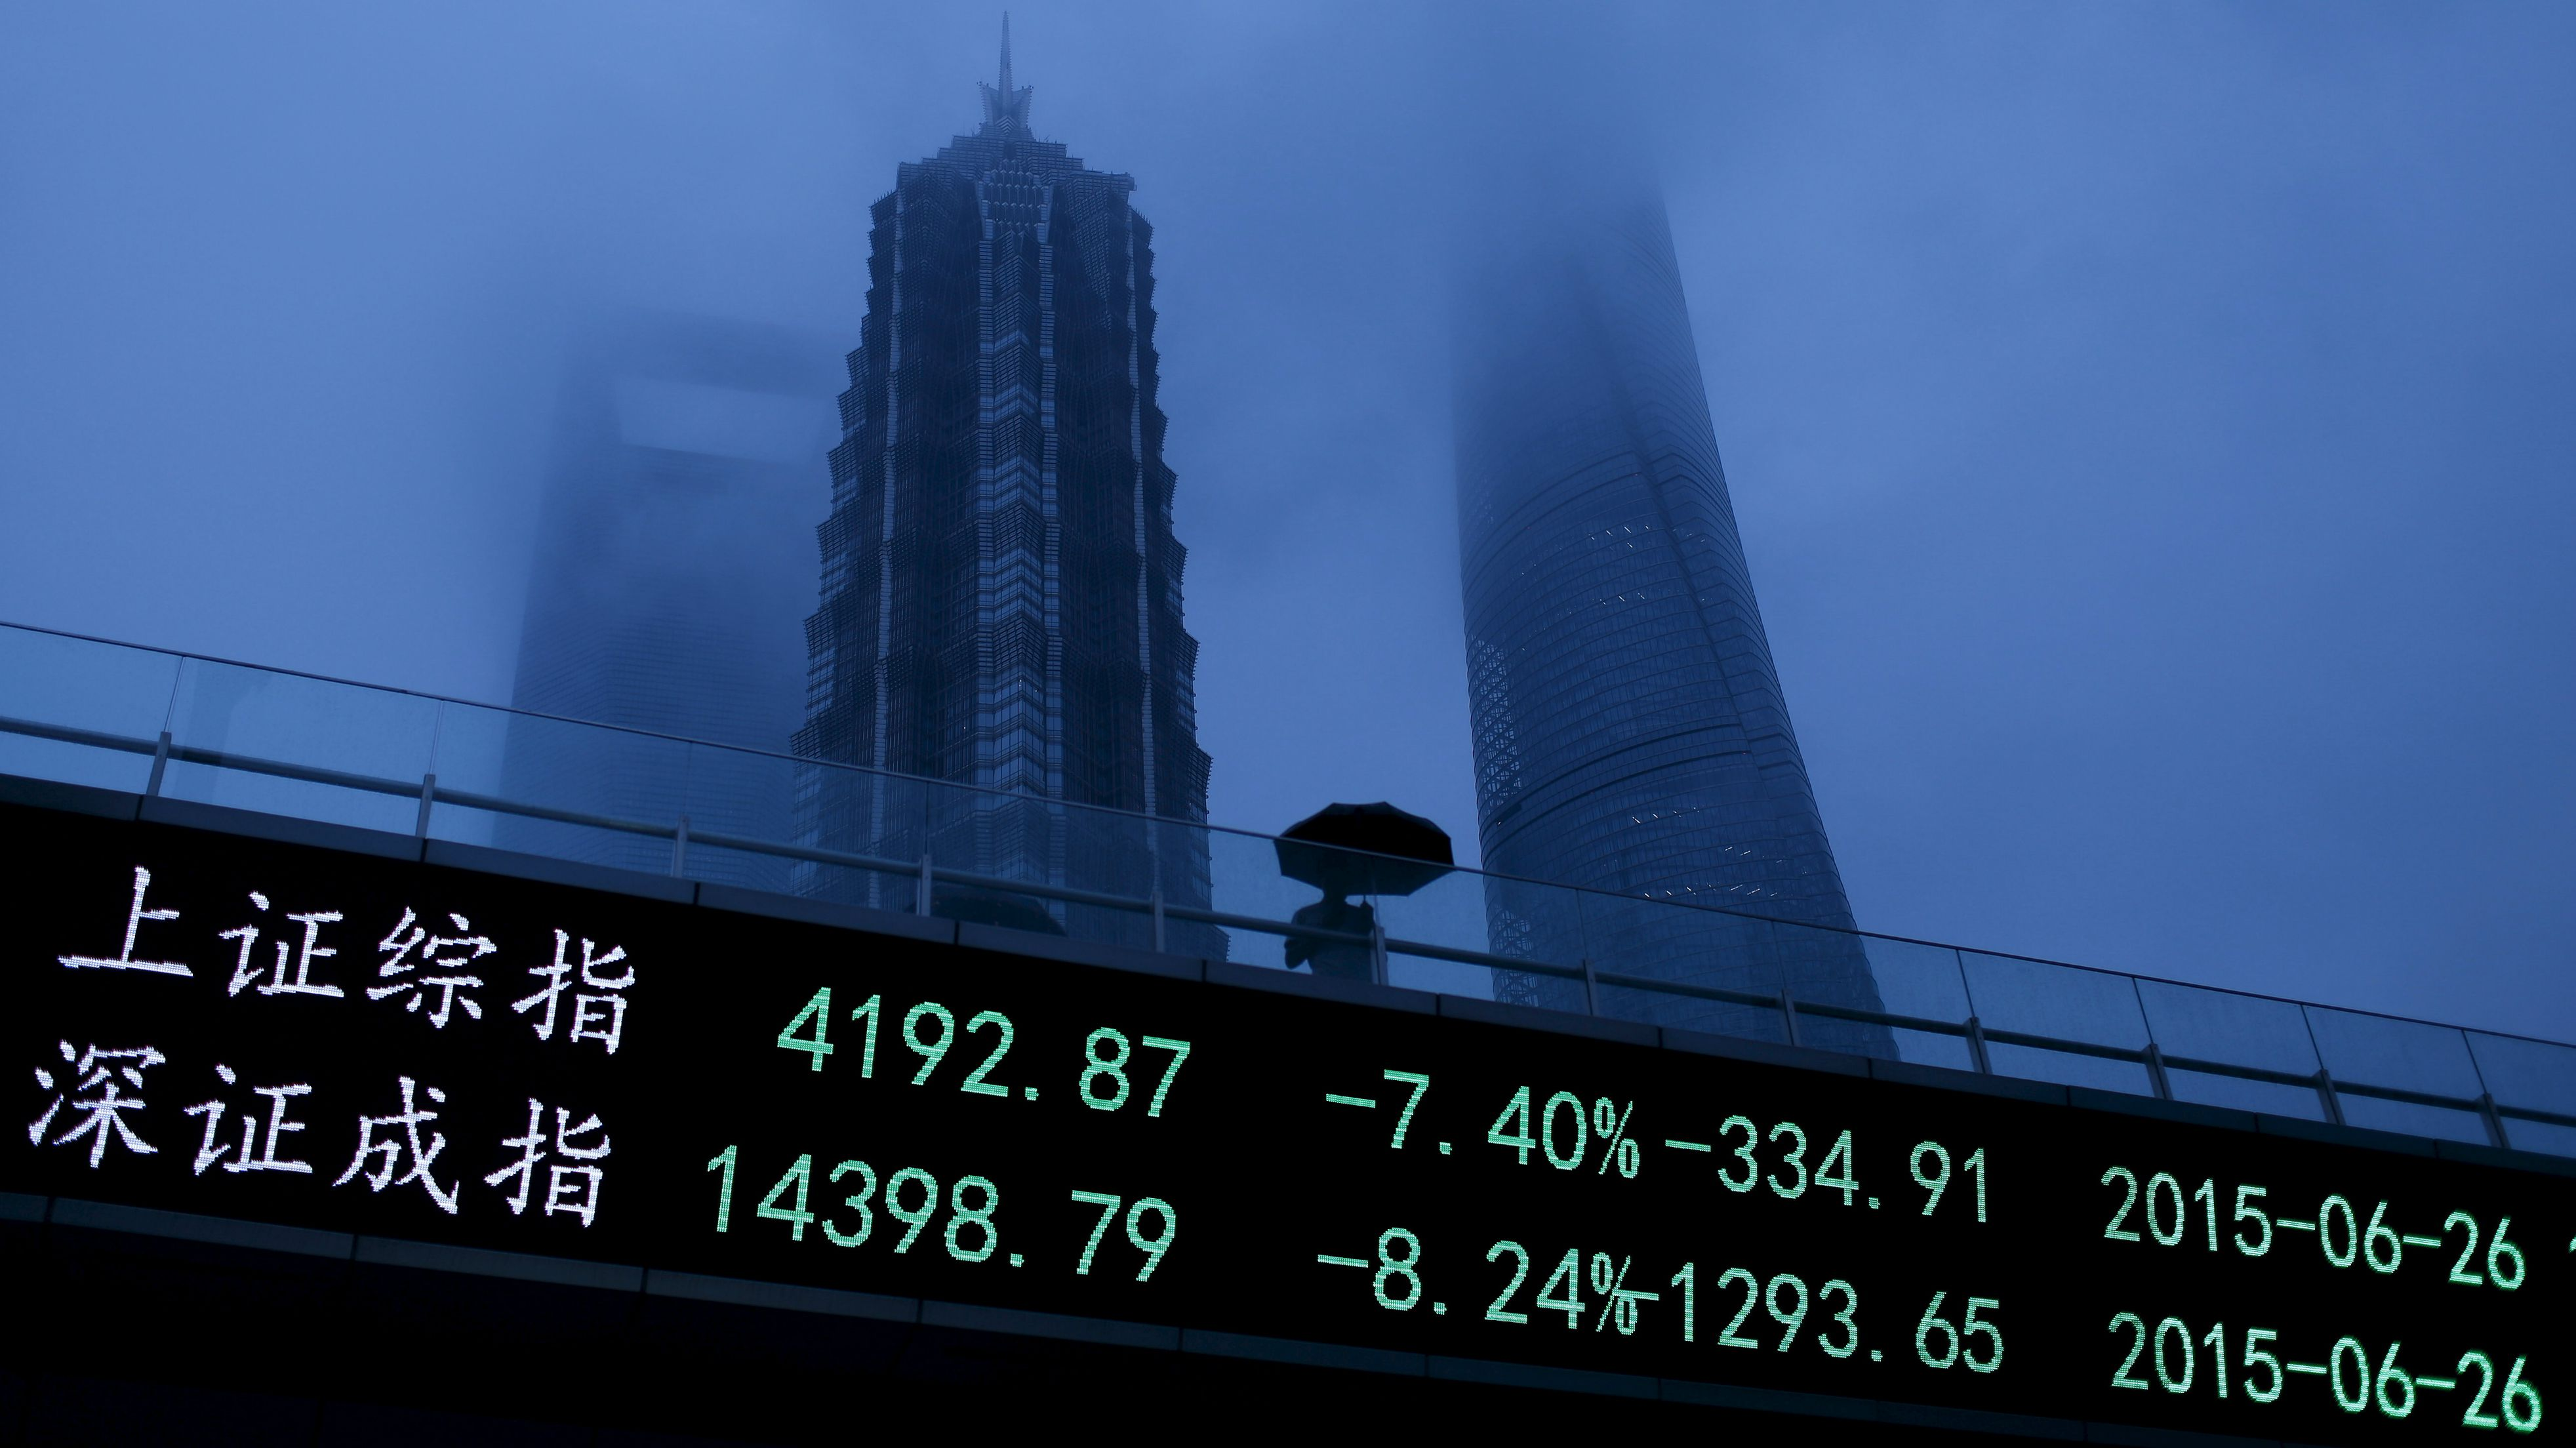 A man walks past an electronic board showing the benchmark Shanghai and Shenzhen stock indices, on a pedestrian overpass at the Pudong financial district in Shanghai, China, June 26, 2015. Chinese stocks plunged over 7 percent on Friday, with one key index recording its biggest fall since 2008, hit by tight liquidity conditions ahead of the quarter-end and uncertainty over the central bank's easing policy. REUTERS/Aly Song